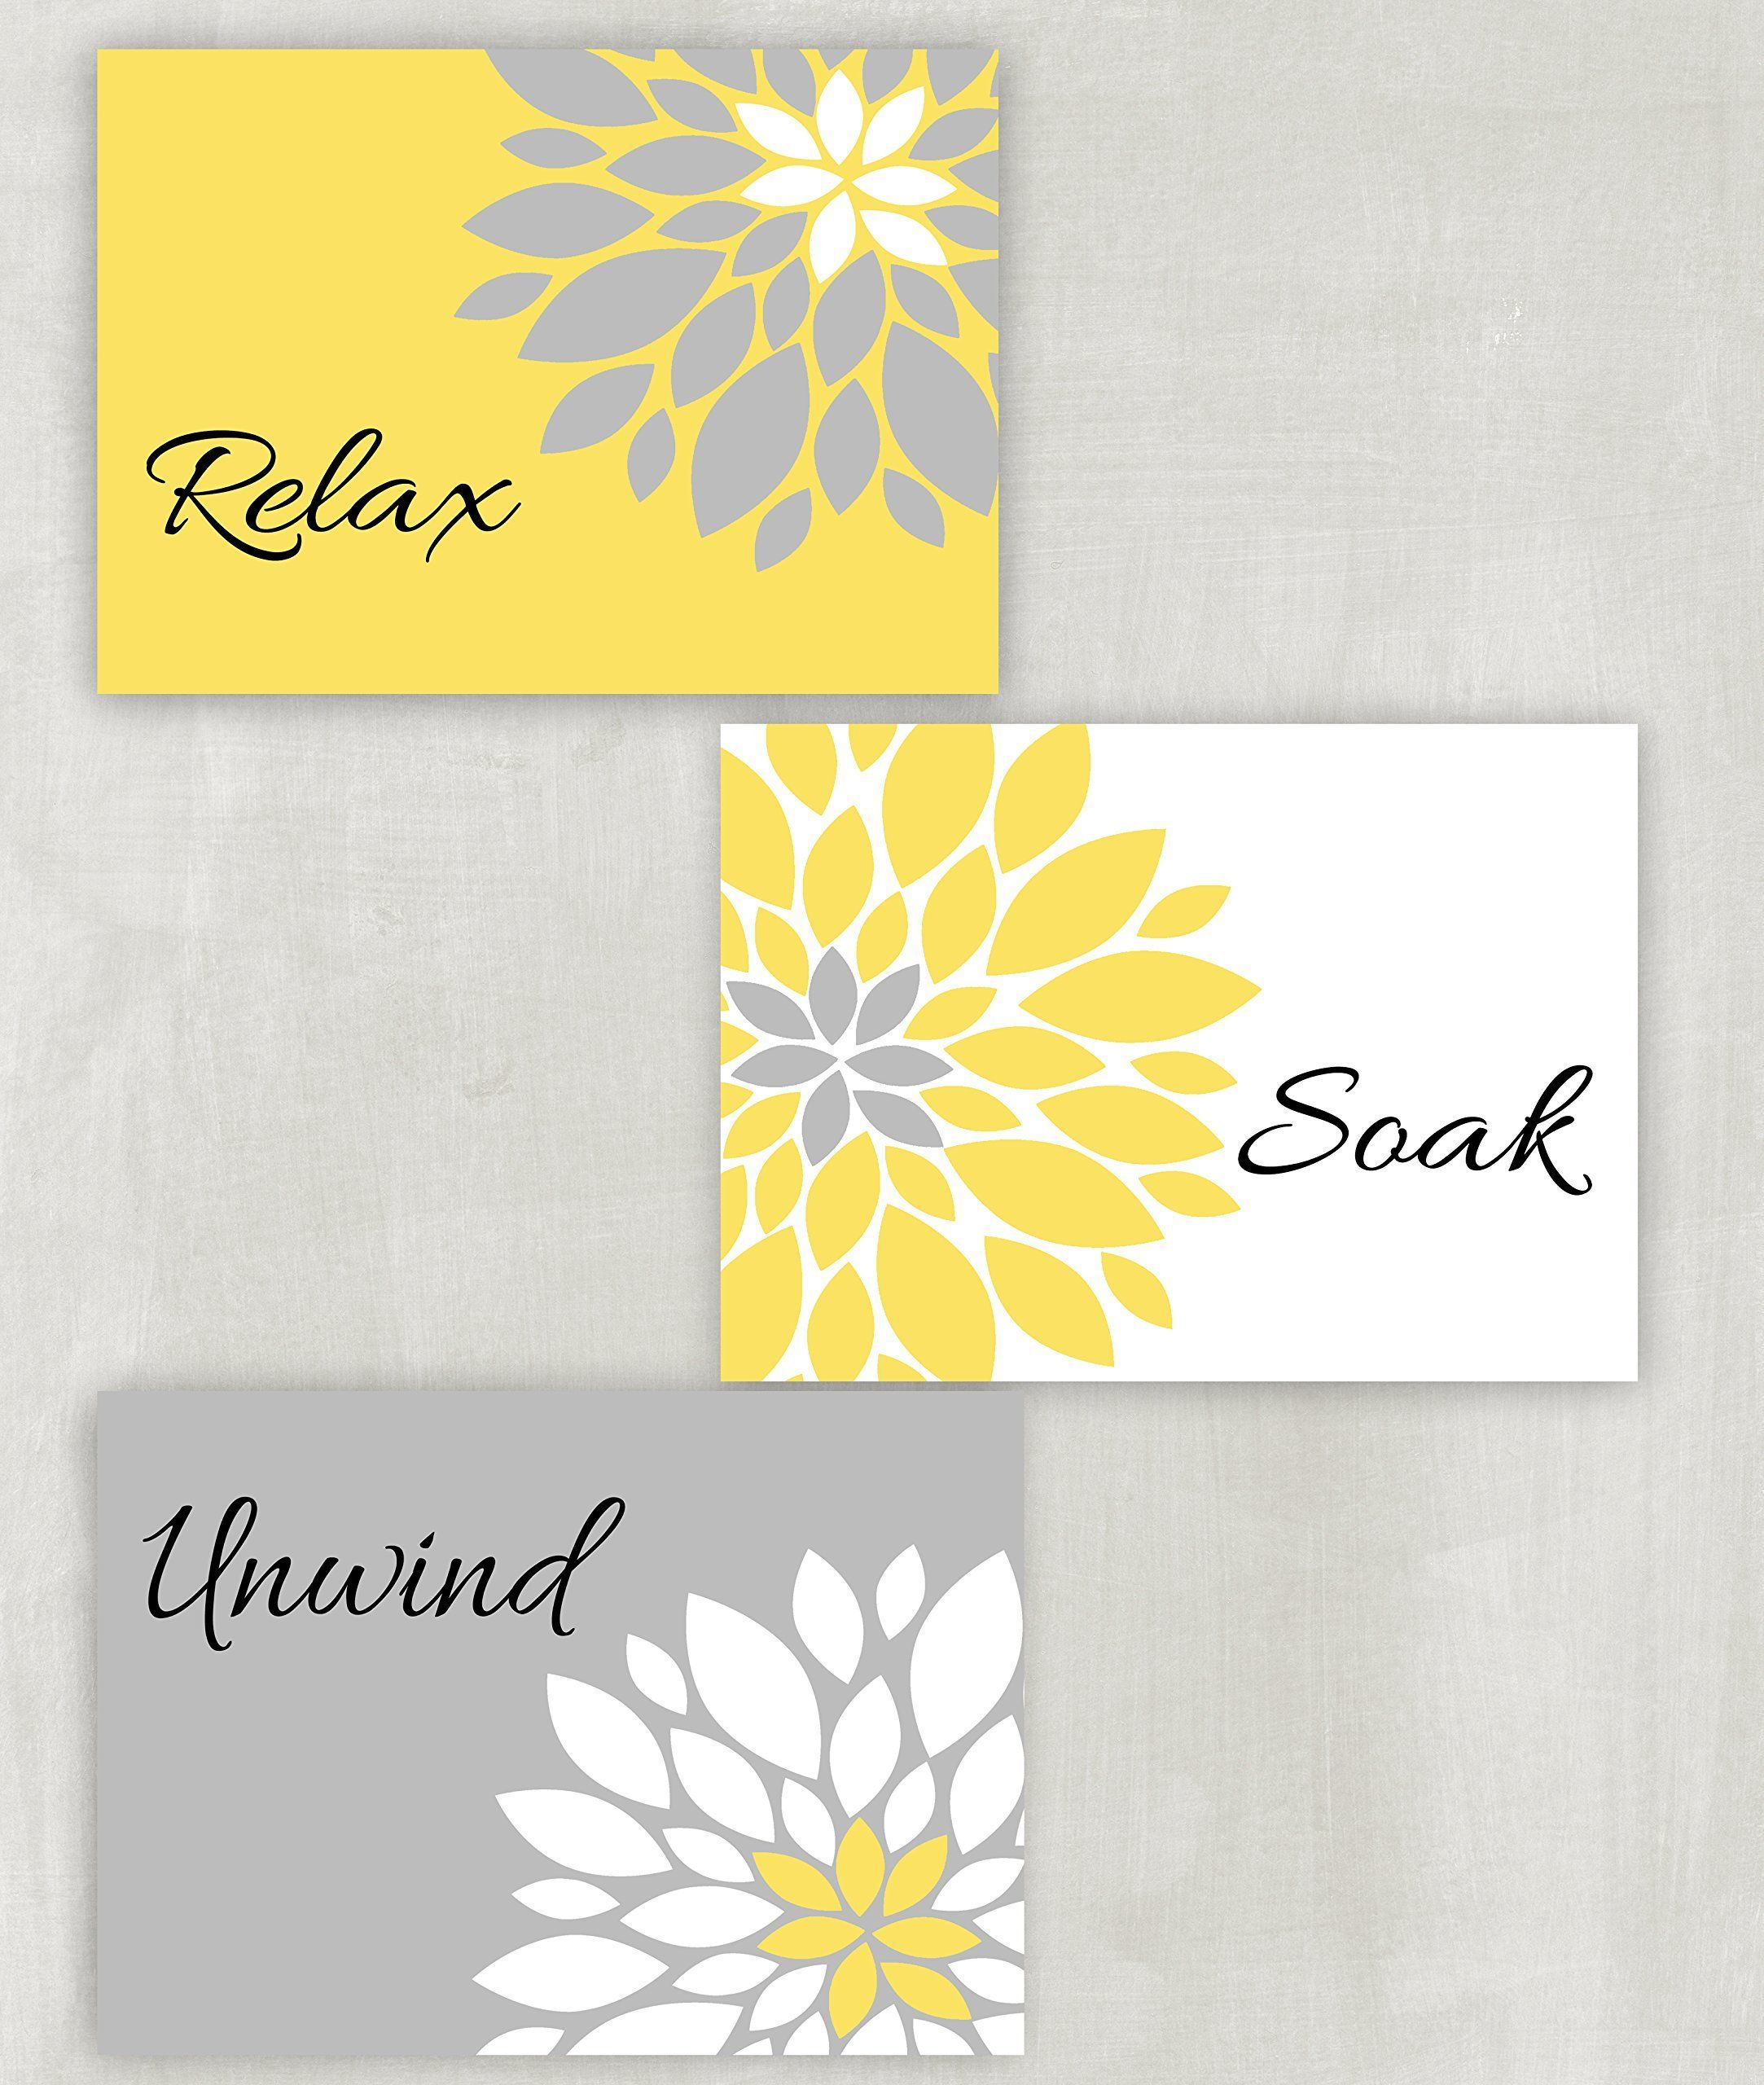 Relax Soak Unwind Floral Wall Art in Yellow, Gray and white Set of 3 ...